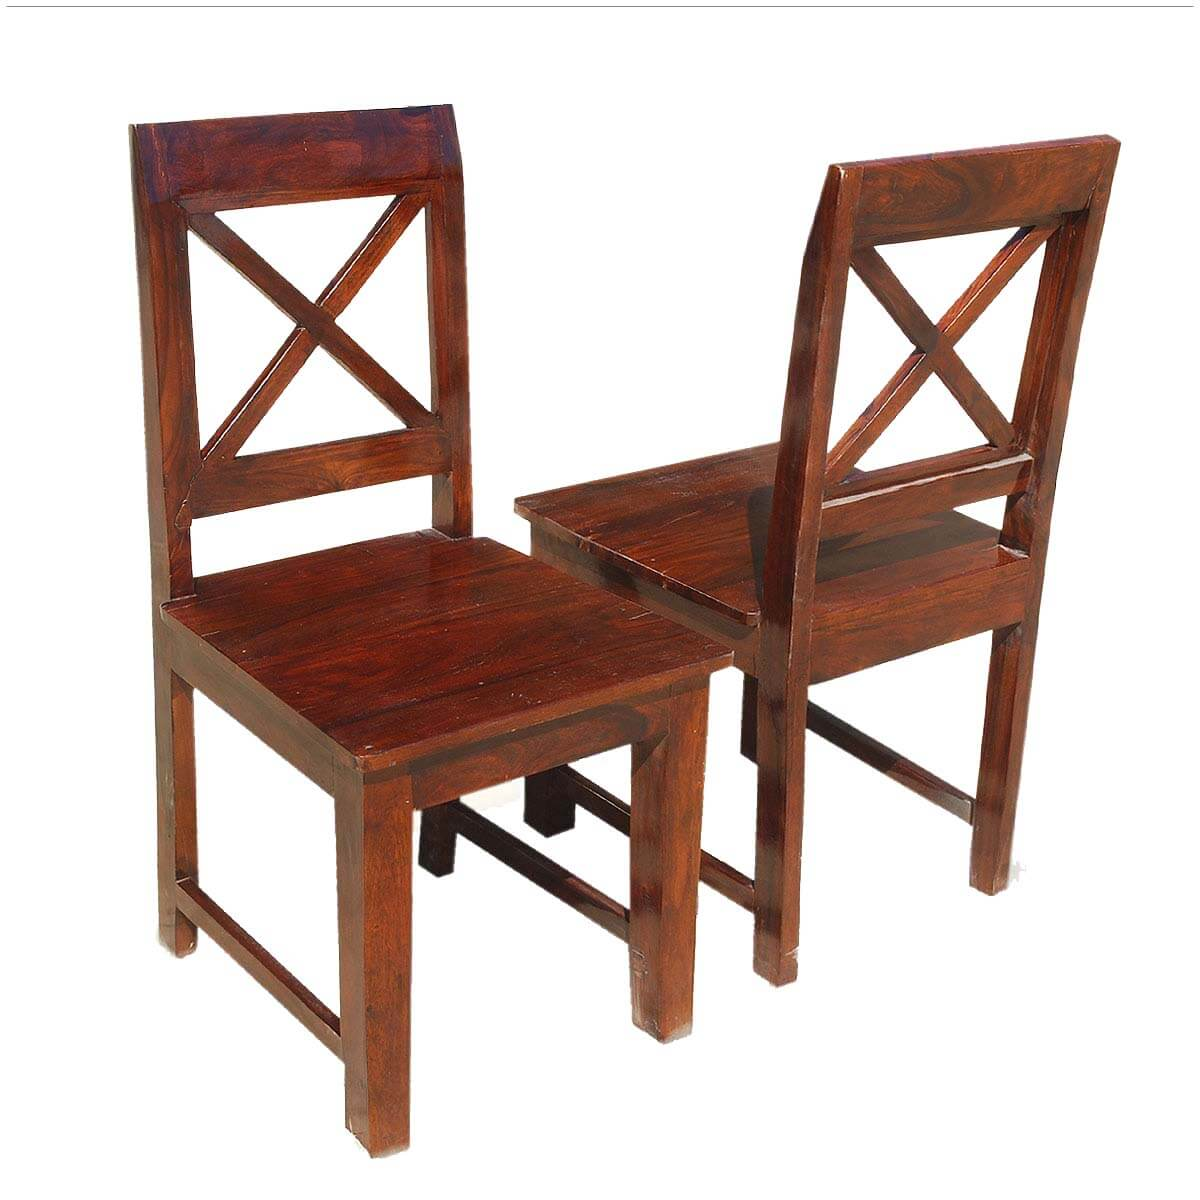 Farmhouse Dining Chairs Oklahoma Farmhouse Solid Wood X Back Dining Chair Set Of 2